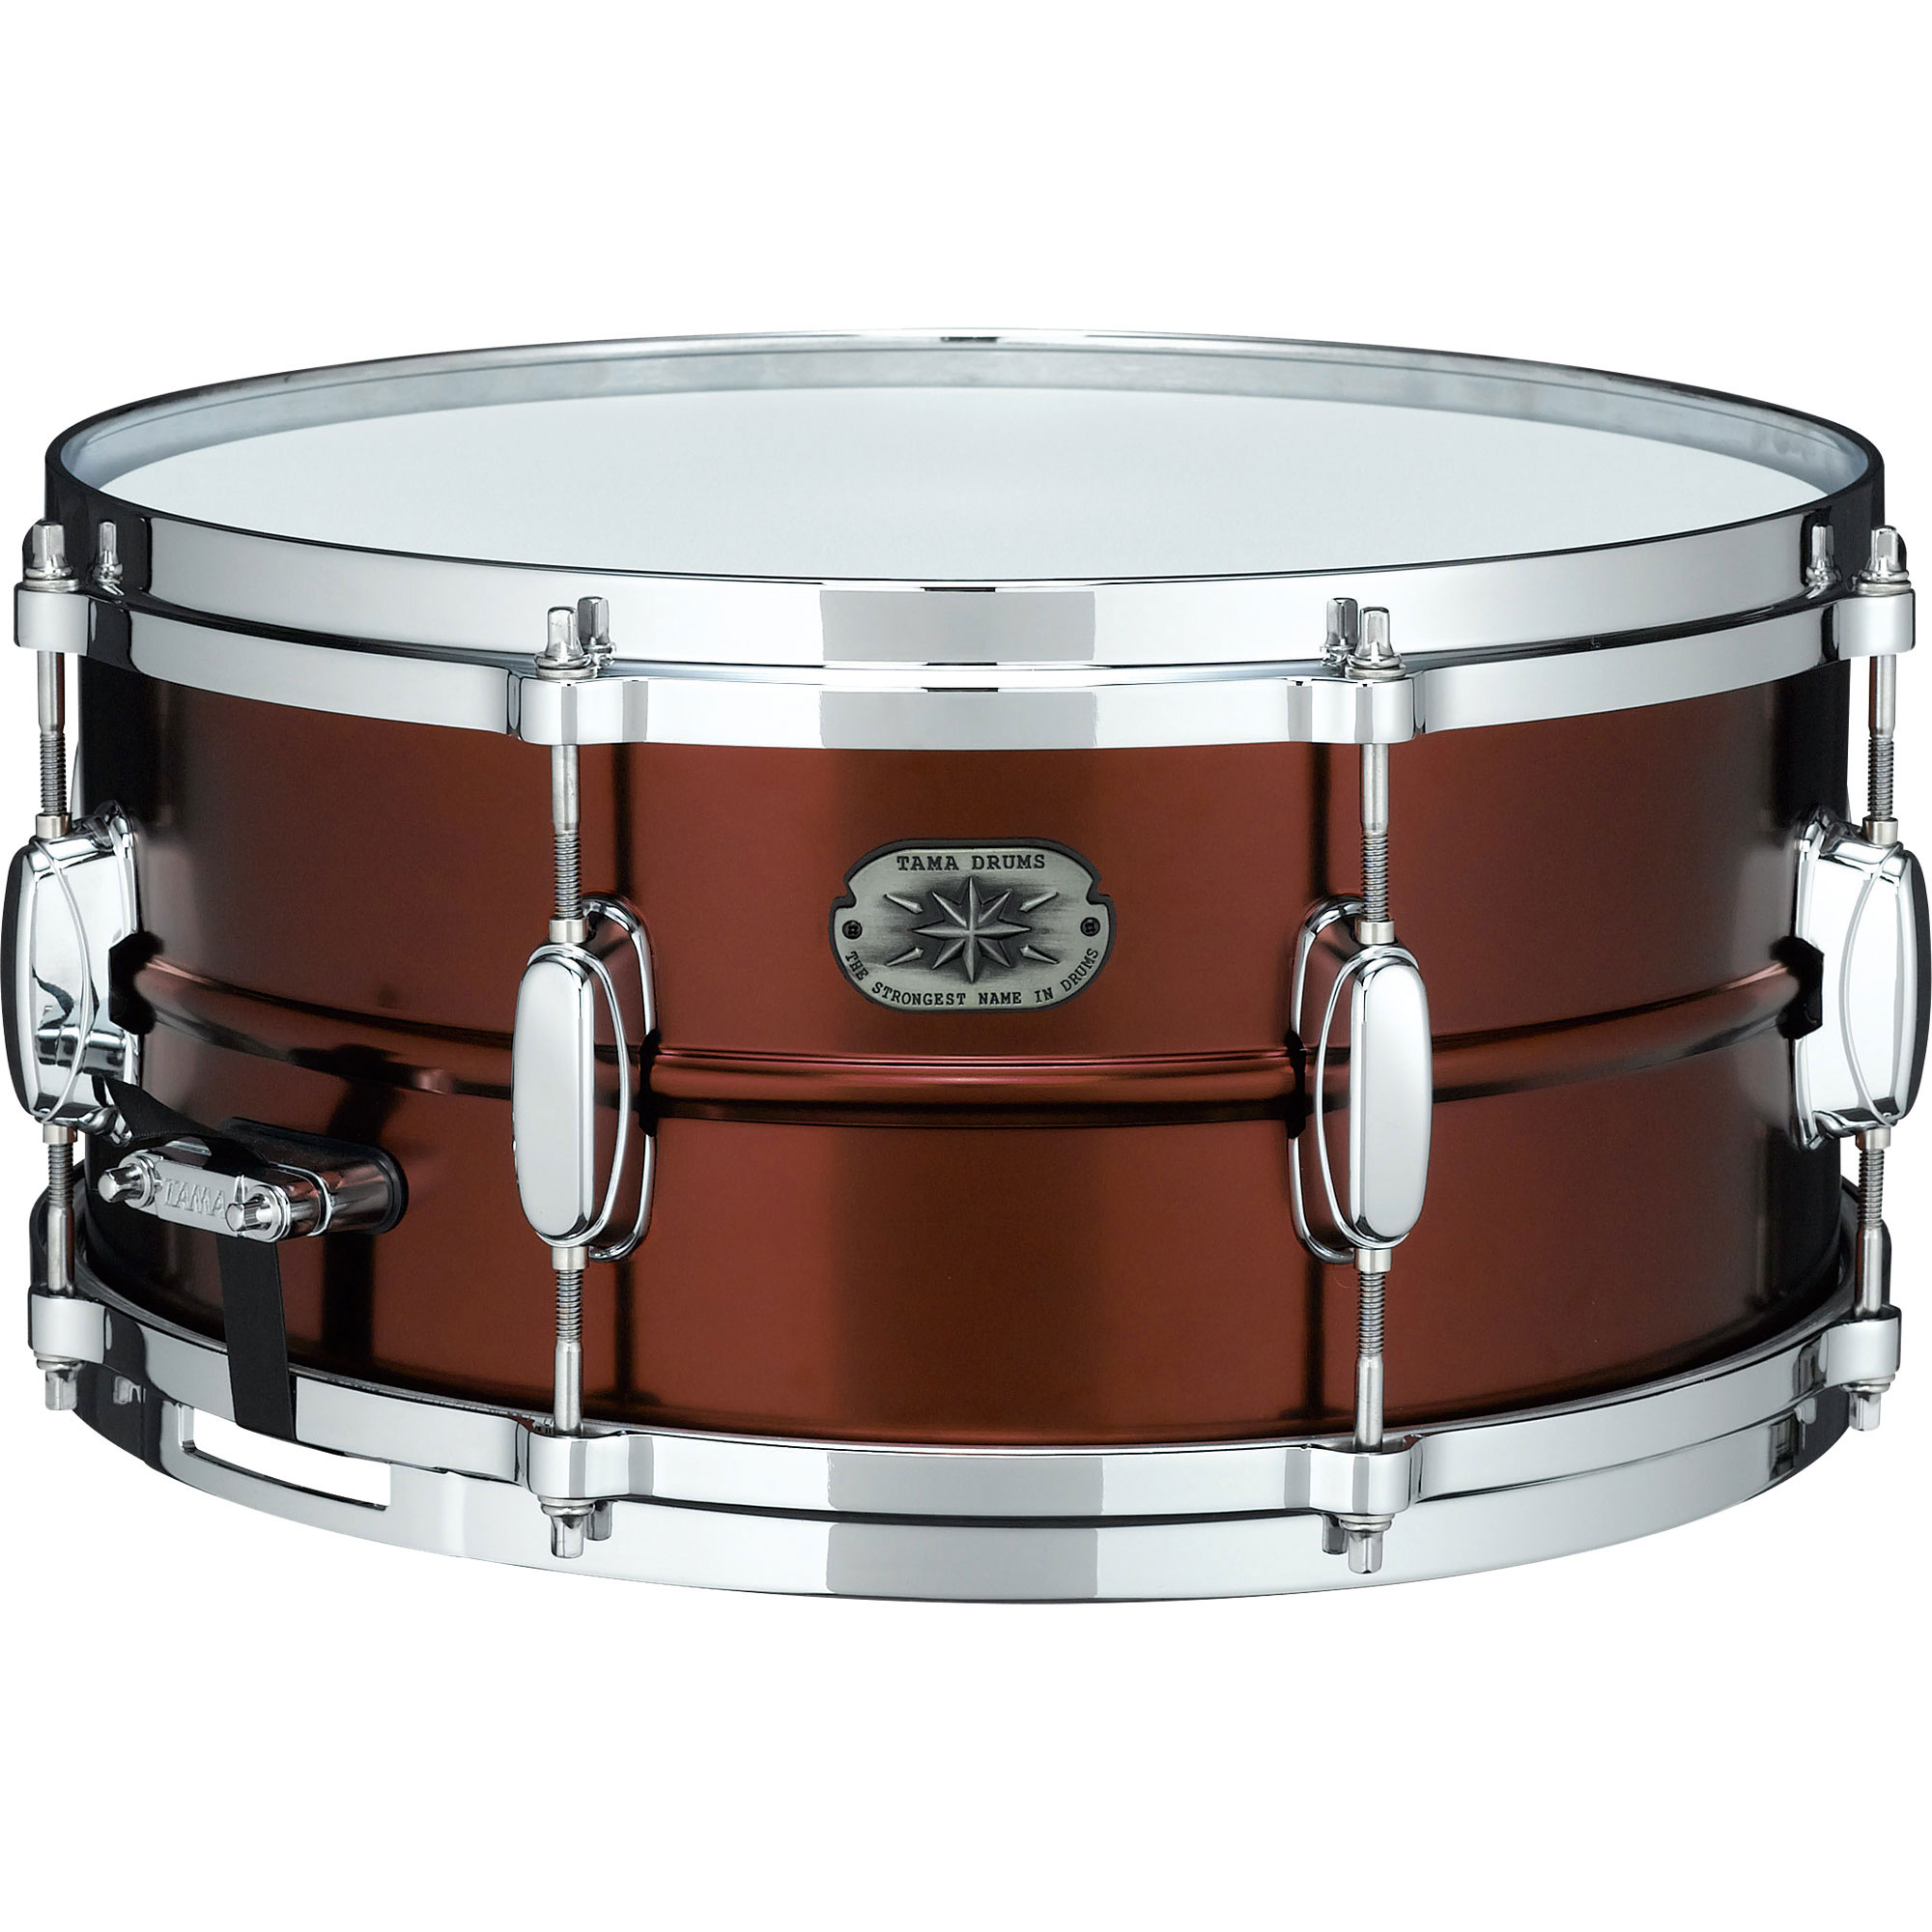 "Tama Limited Edition 6.5"" x 14"" Metalworks Steel Snare Drum in Satin Bronze Lacquer with Chrome Hardware"